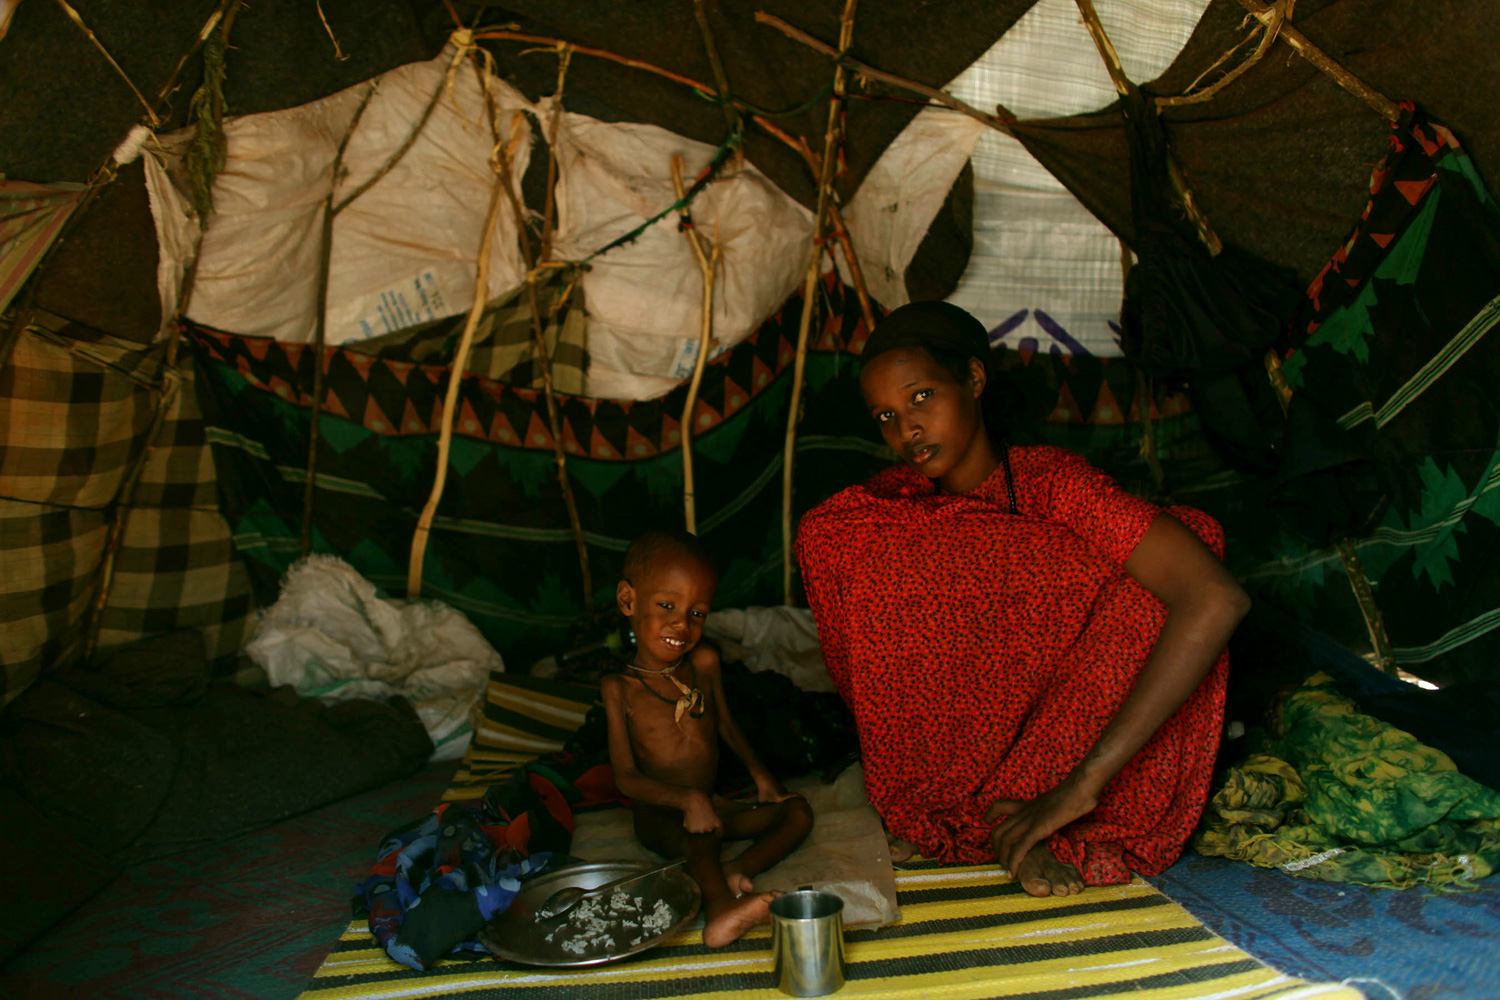 Arriving from Somalia, Ali Noor Gheddo (two years old) has lived in Dadaab Camp for 16 days.